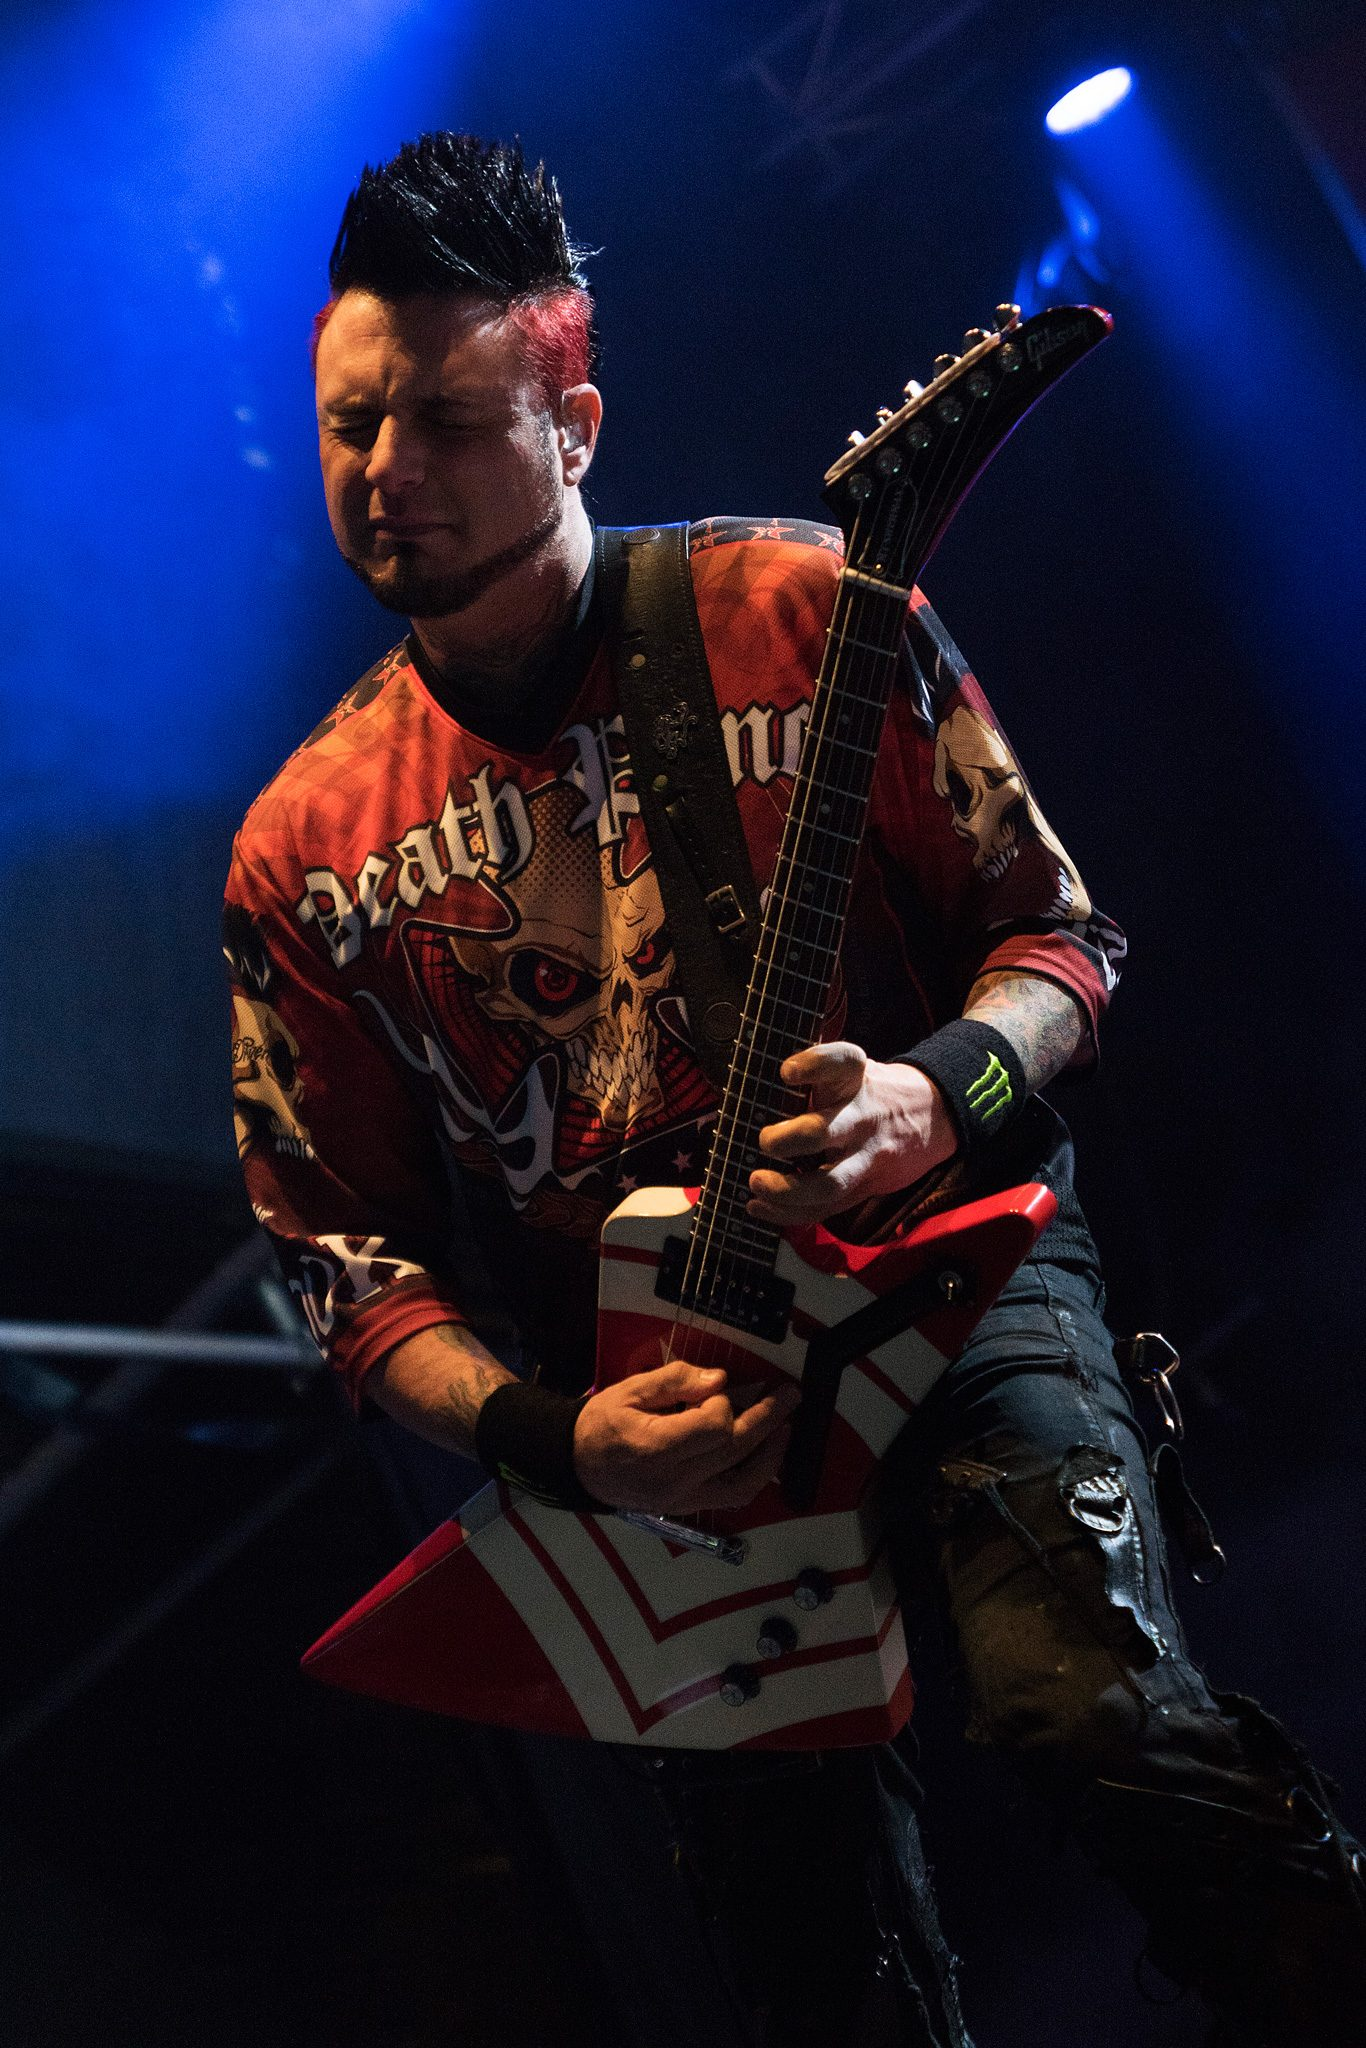 Jason Hook, Five Finger Death Punch